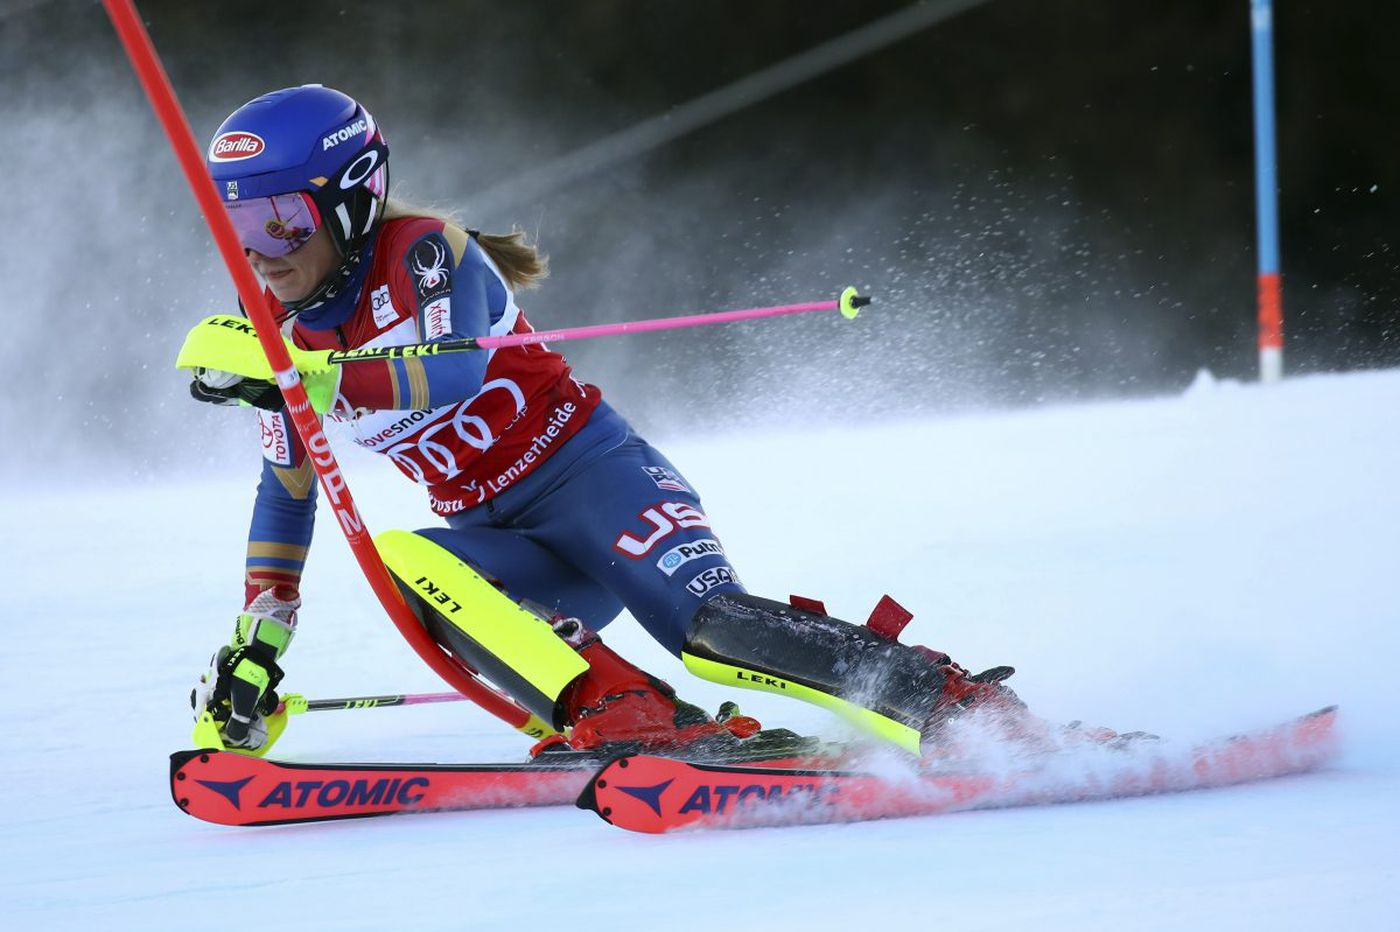 Wednesday Night Olympics: Mikaela Shiffrin watch continues, USA-Canada women's hockey